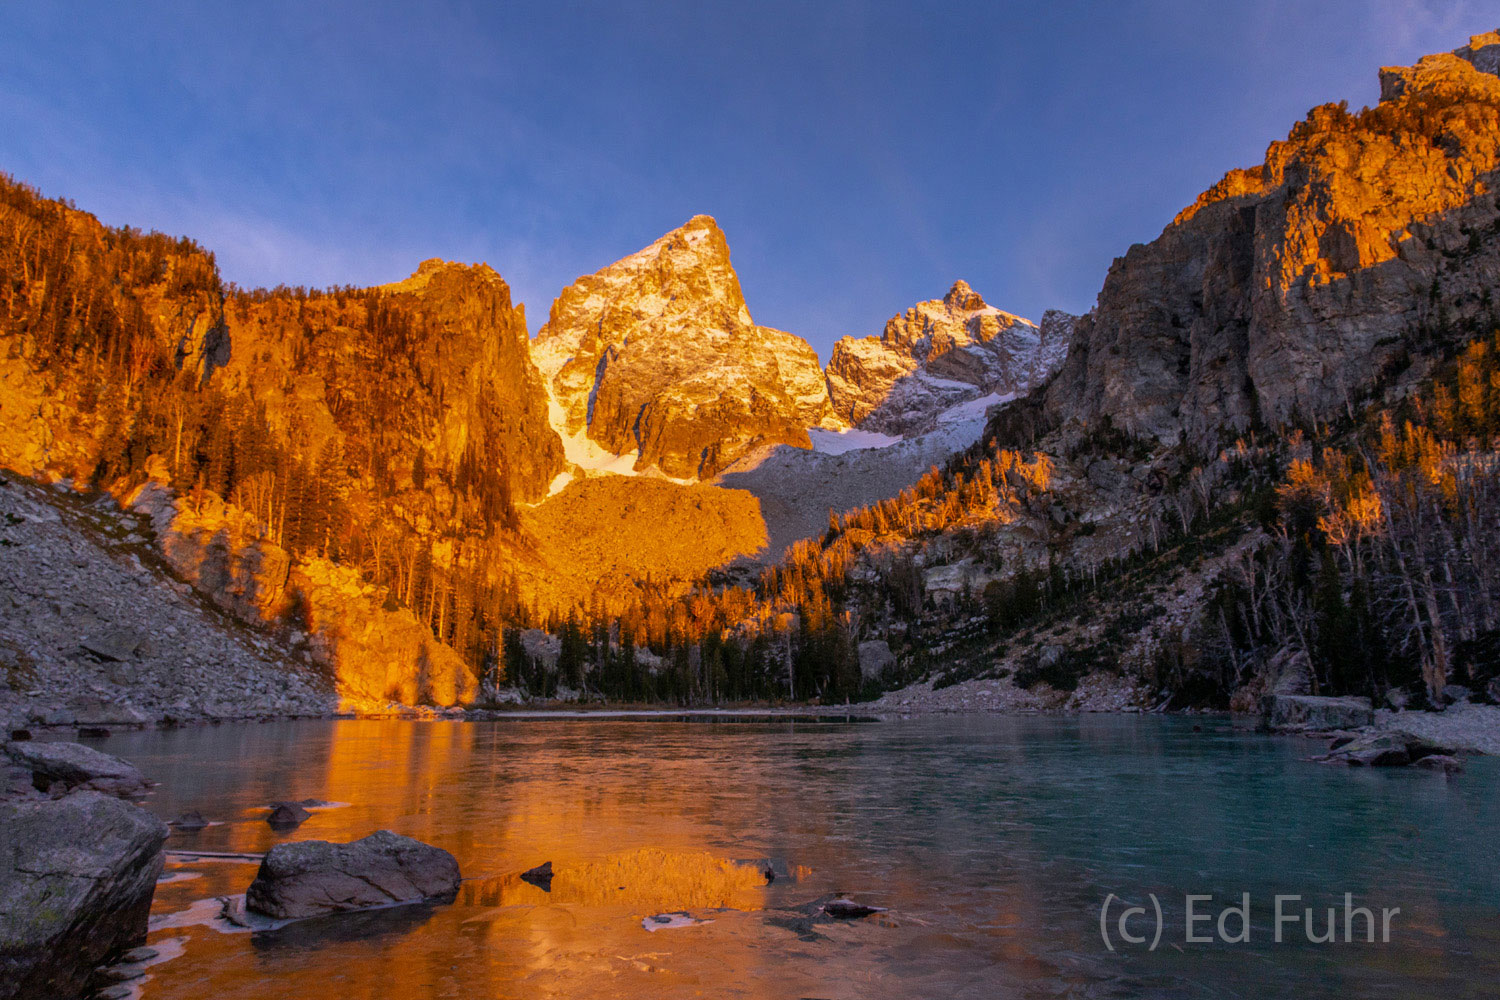 Coated in ice, a high alpine lake reflects the glow or morning's first light, below the peak of the Grand.